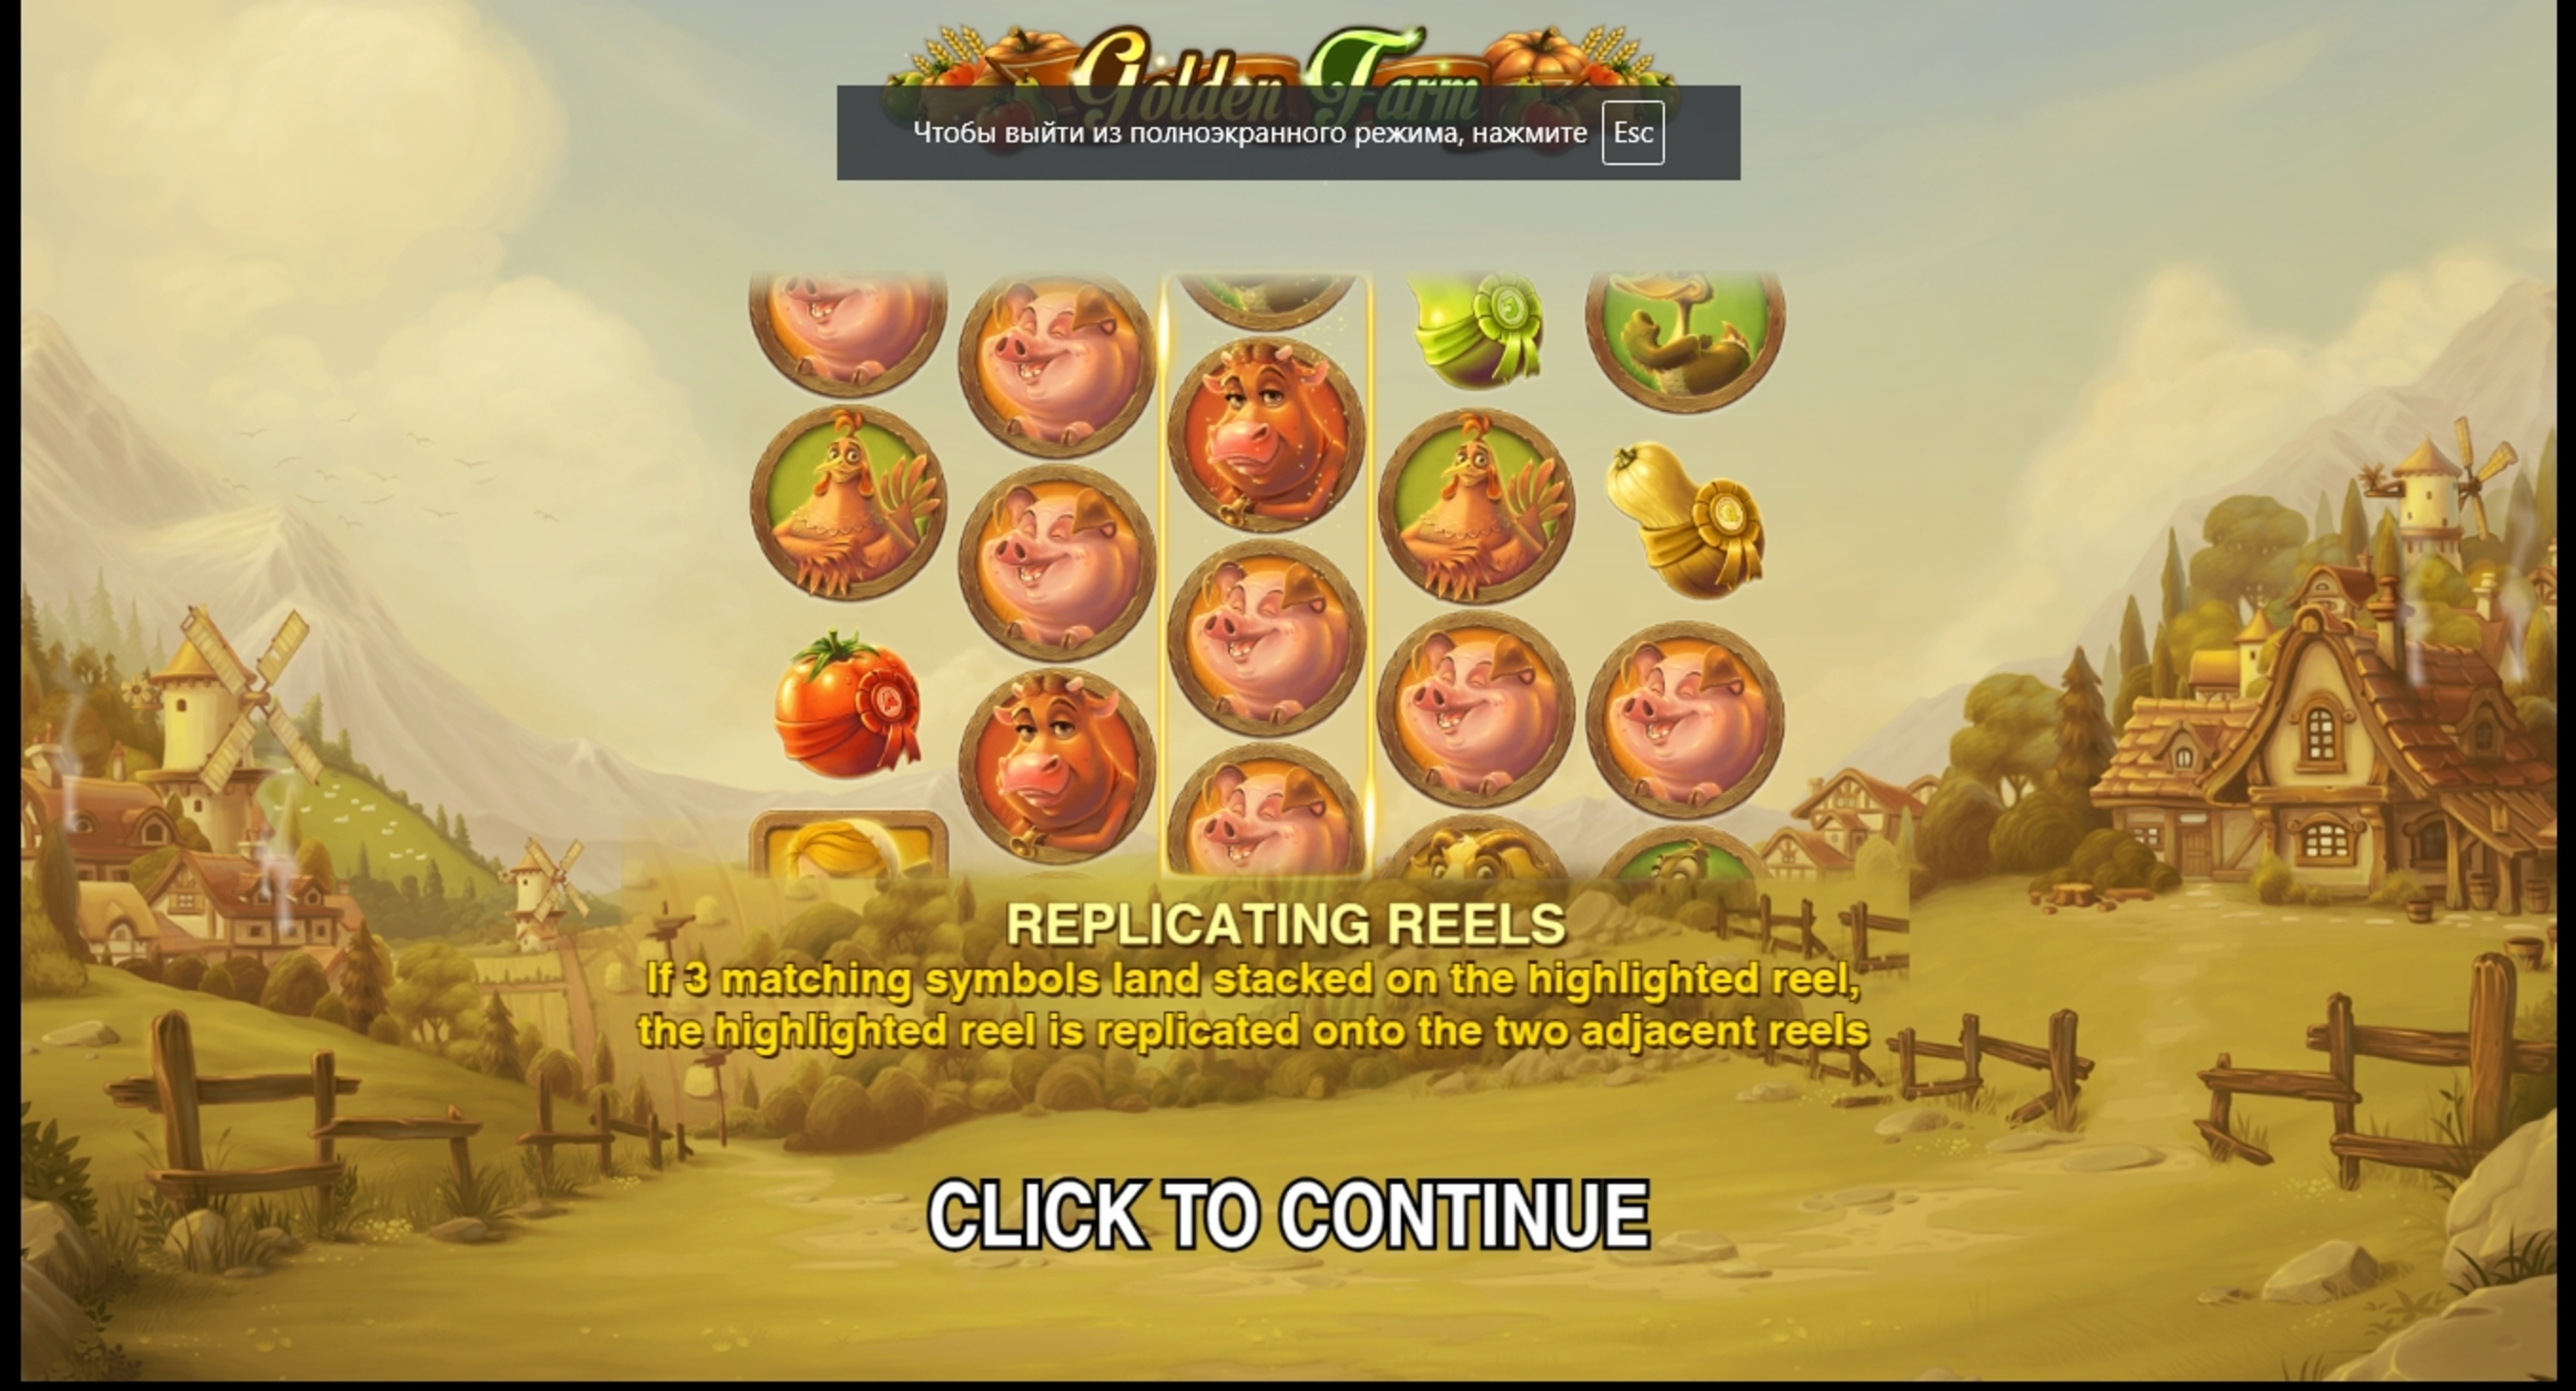 Play Golden Farm Free Casino Slot Game by Push Gaming